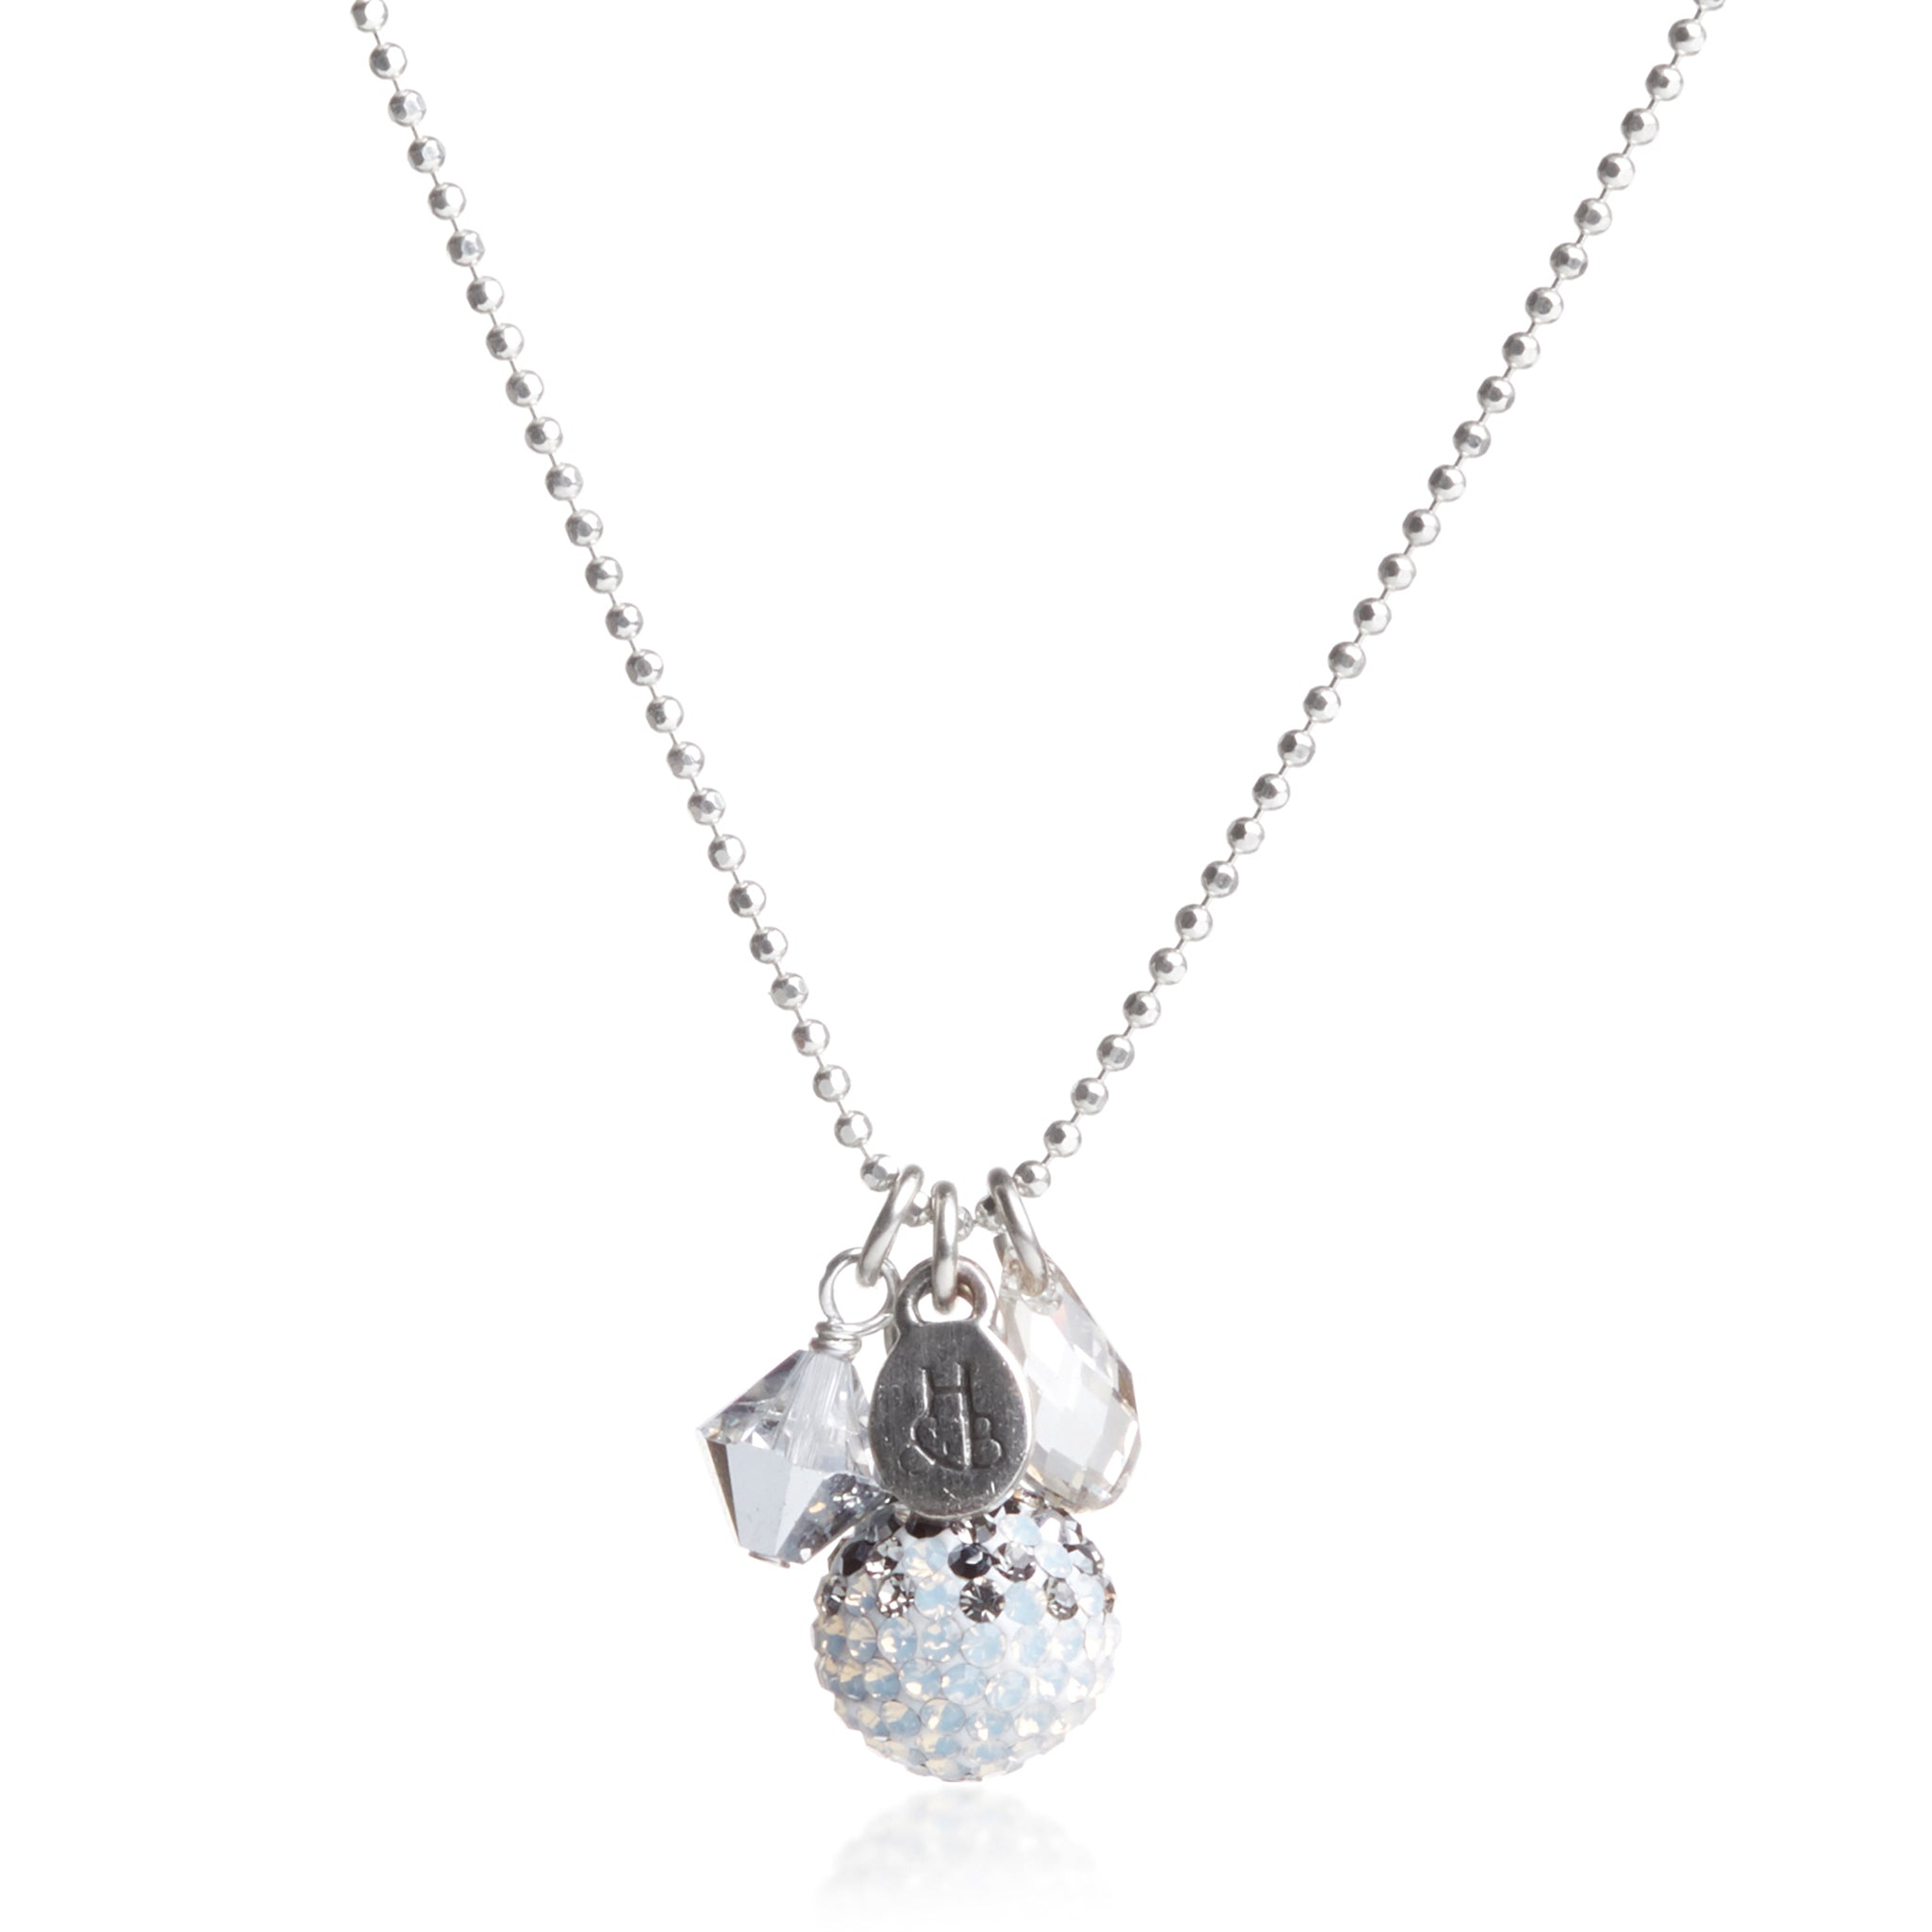 Avalanche Sparkle Ball™ Necklace Cluster